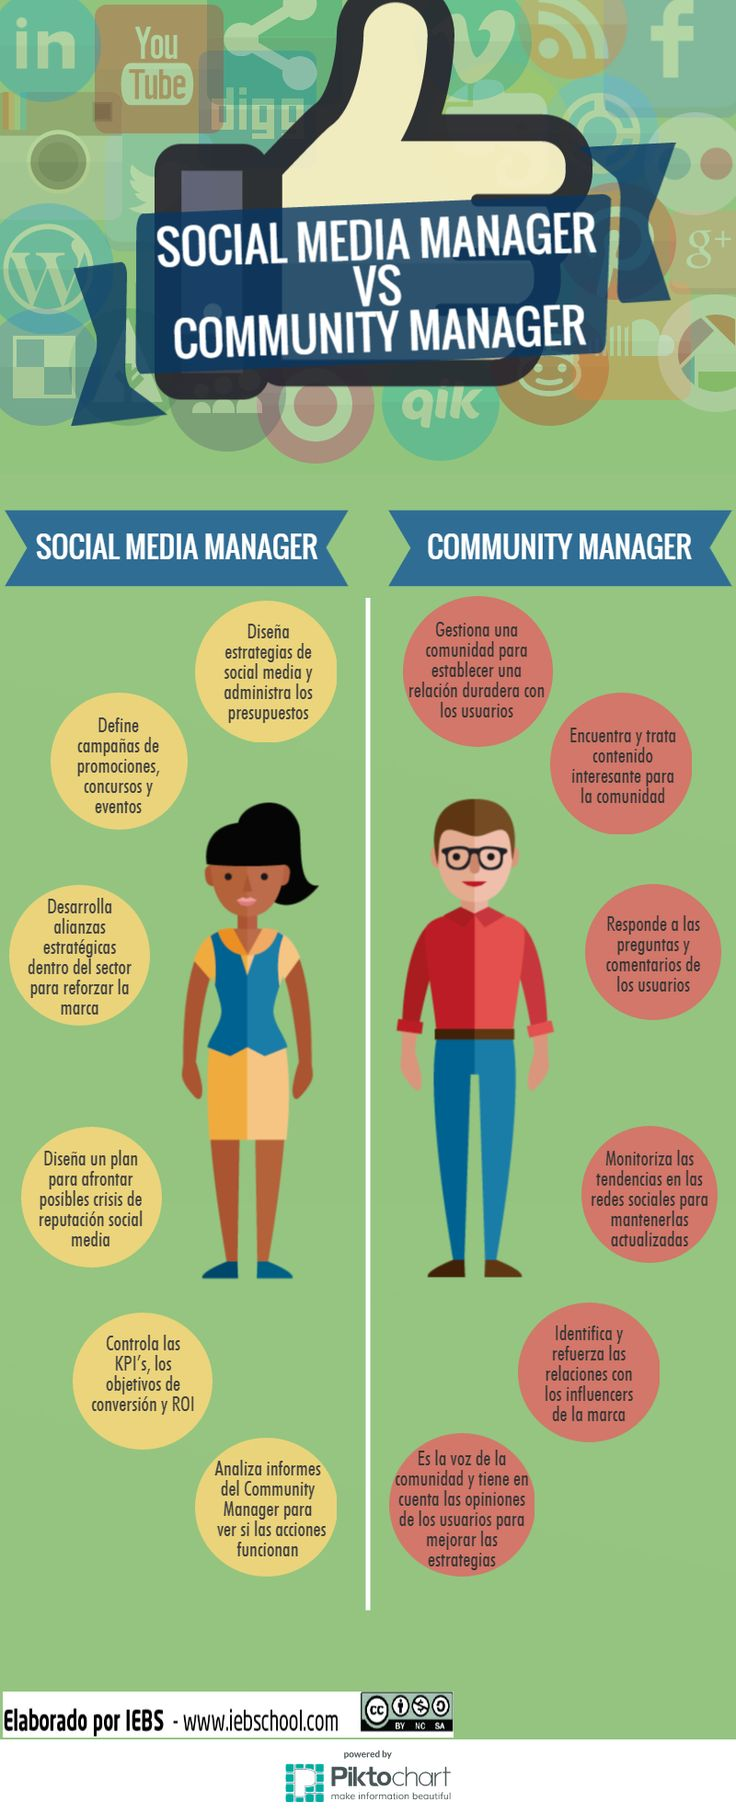 Social Media Manager vs Community Manager